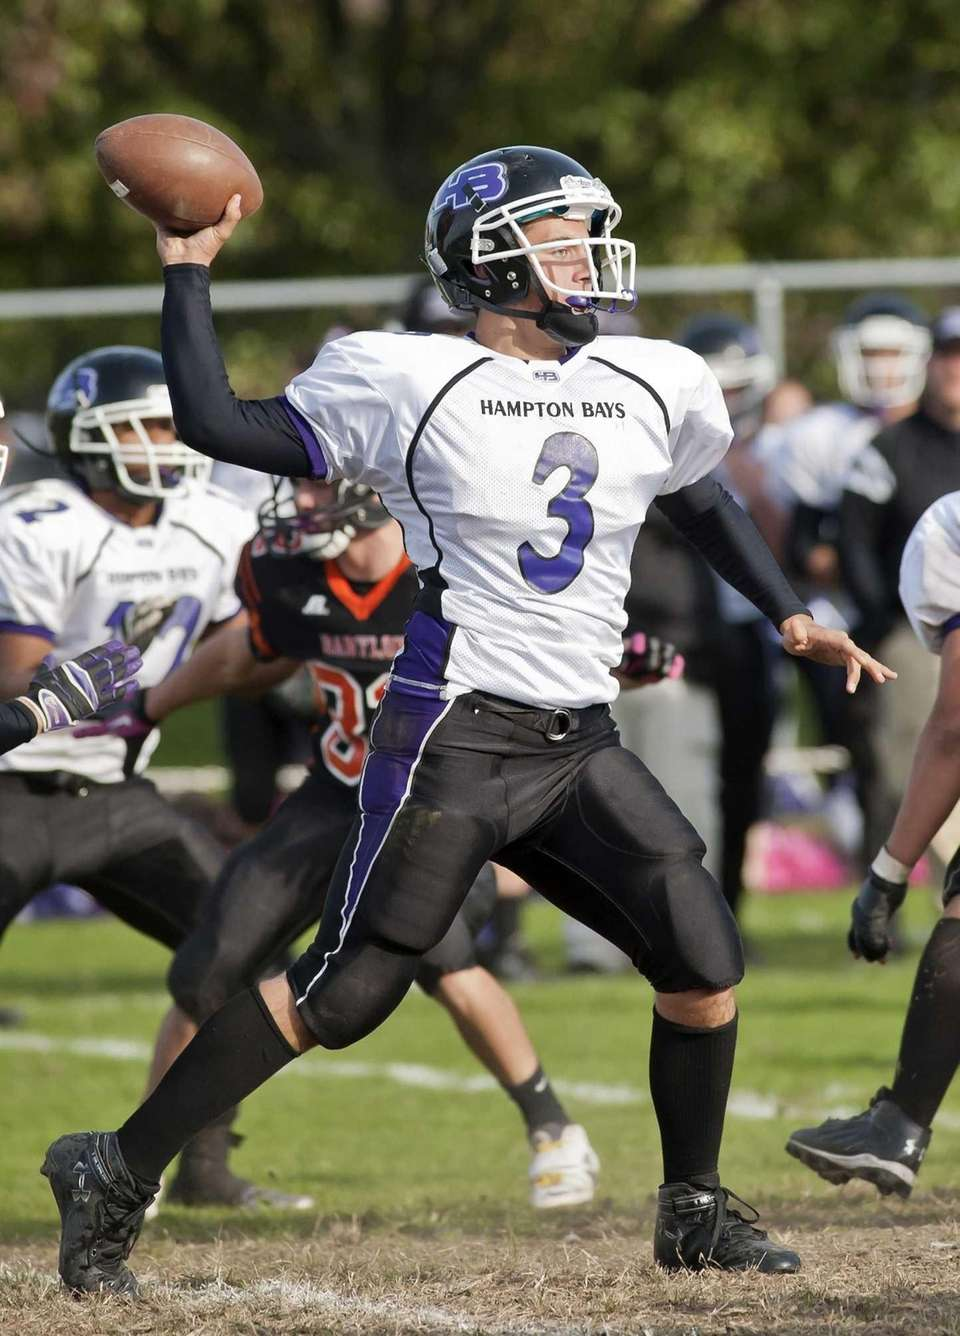 Hampton Bays's quarterback Justin Carbone looks to pass.